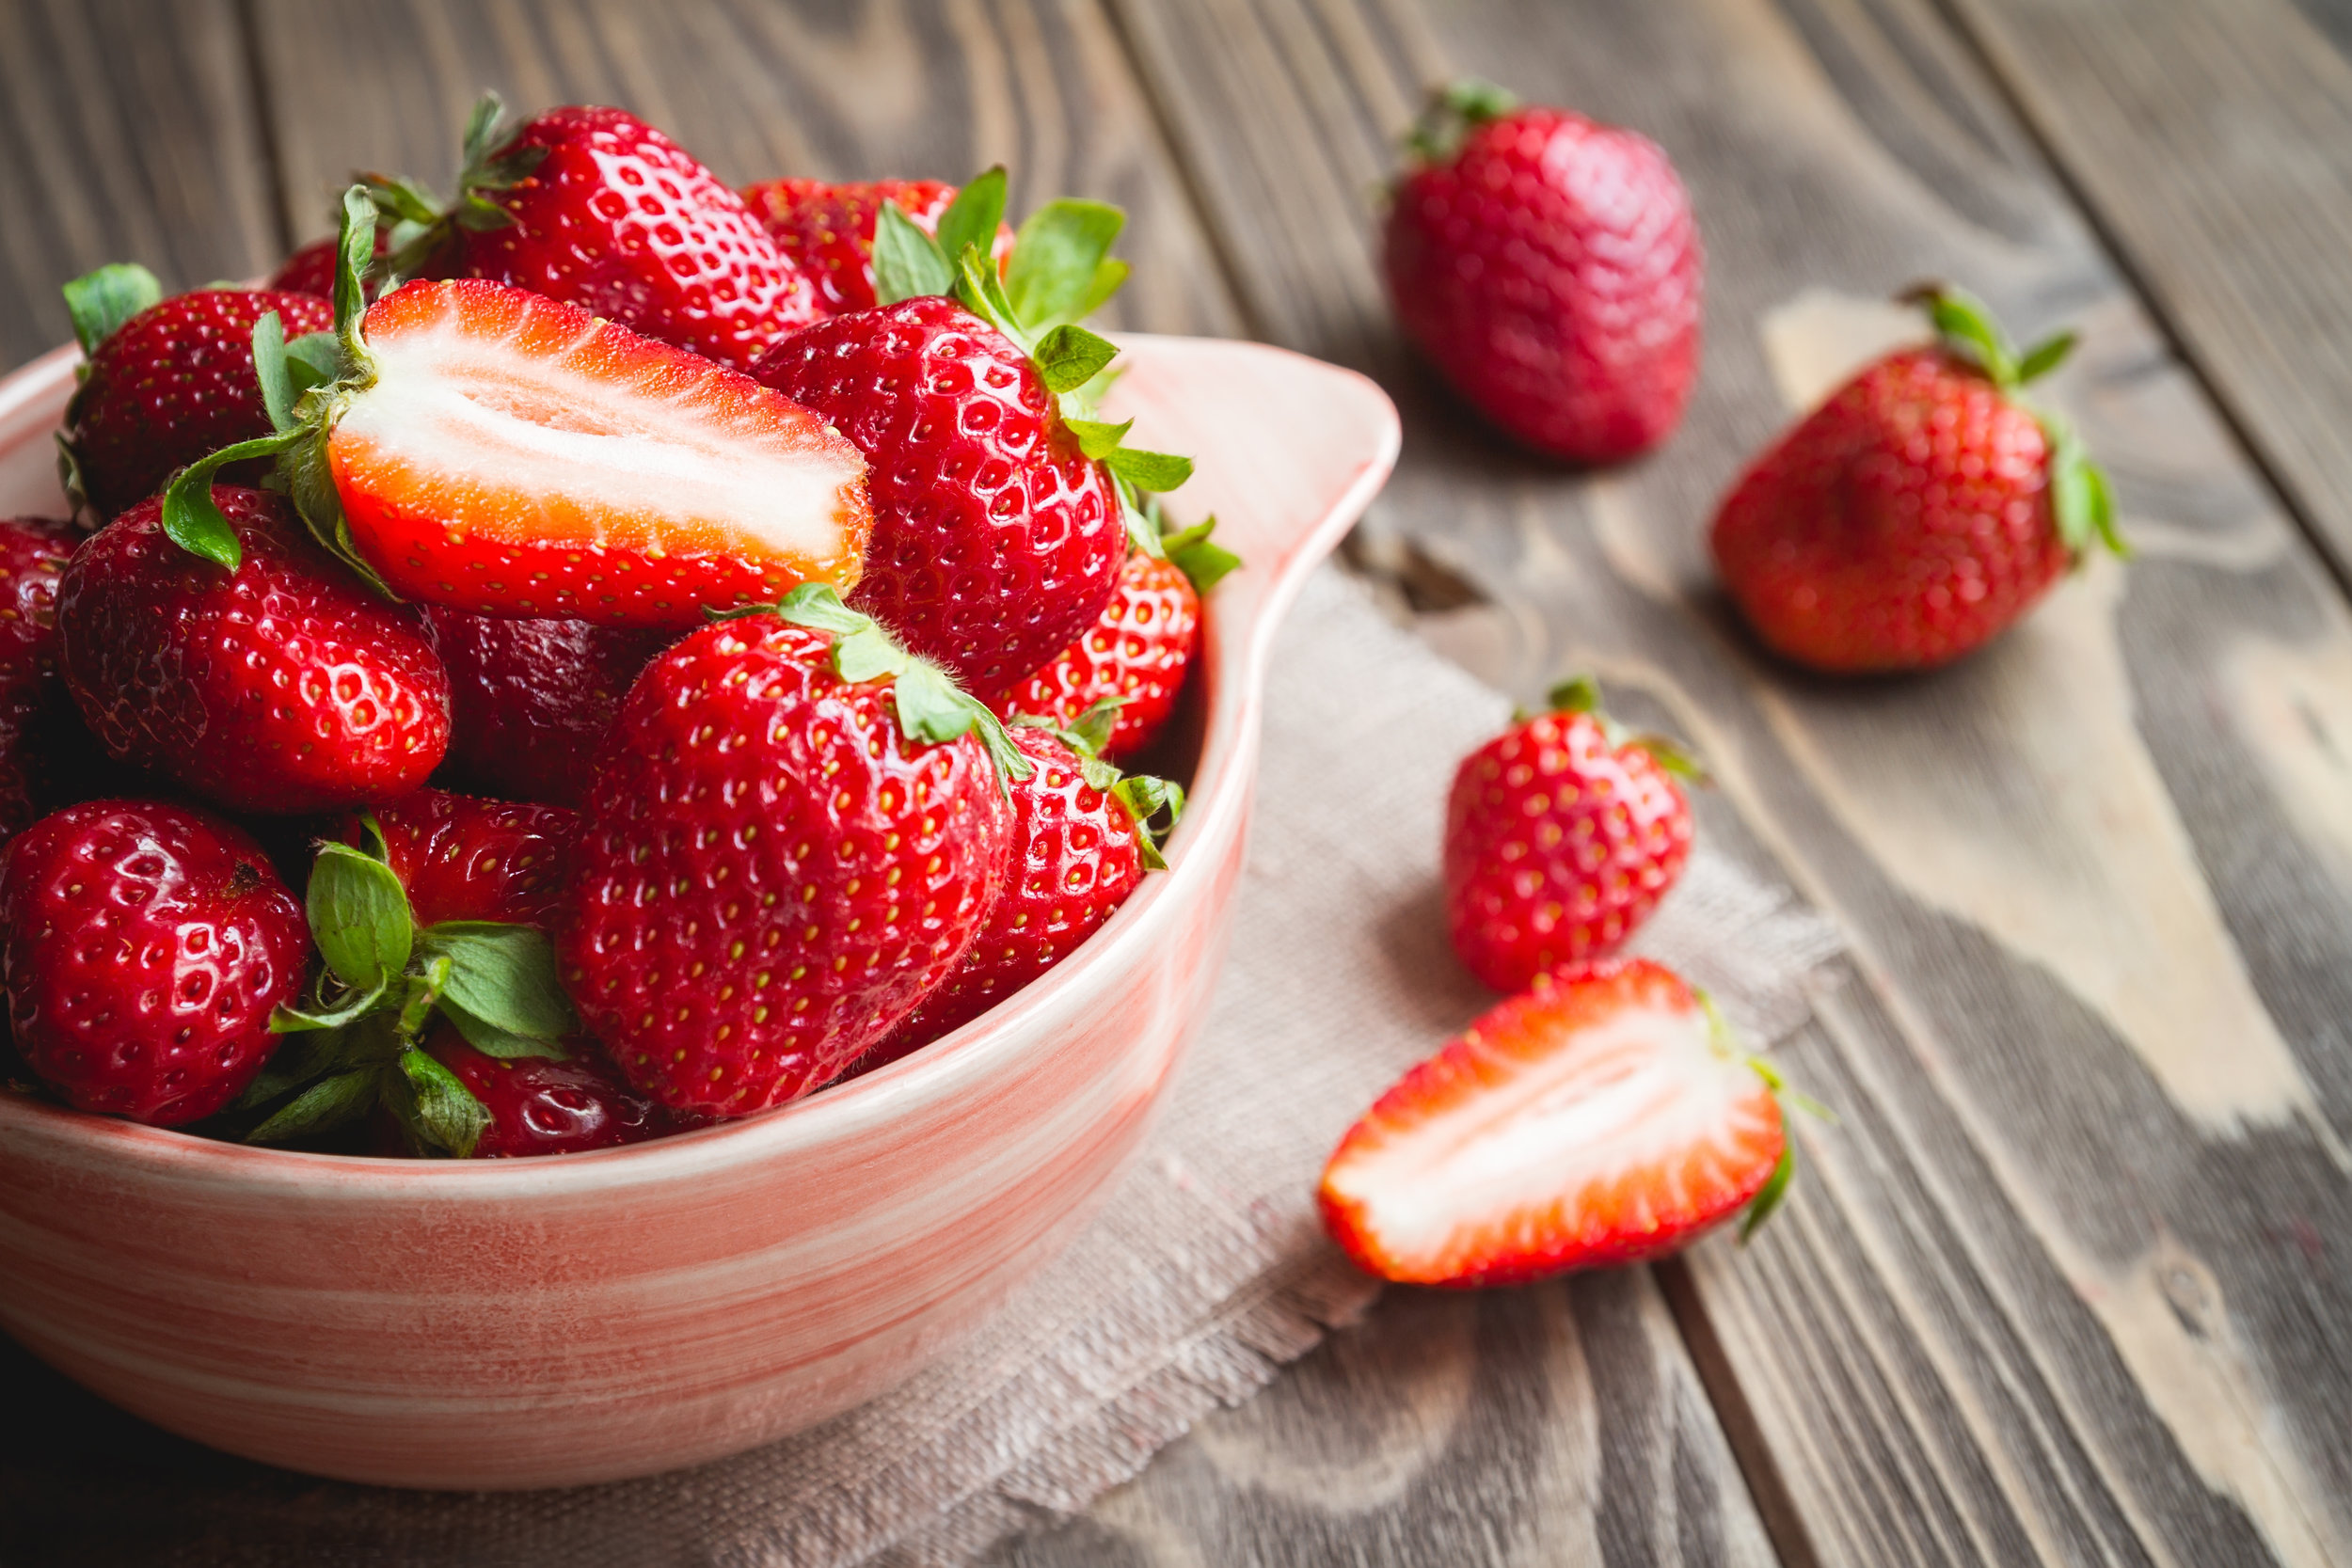 shutterstock_408781099(strawberry).jpg